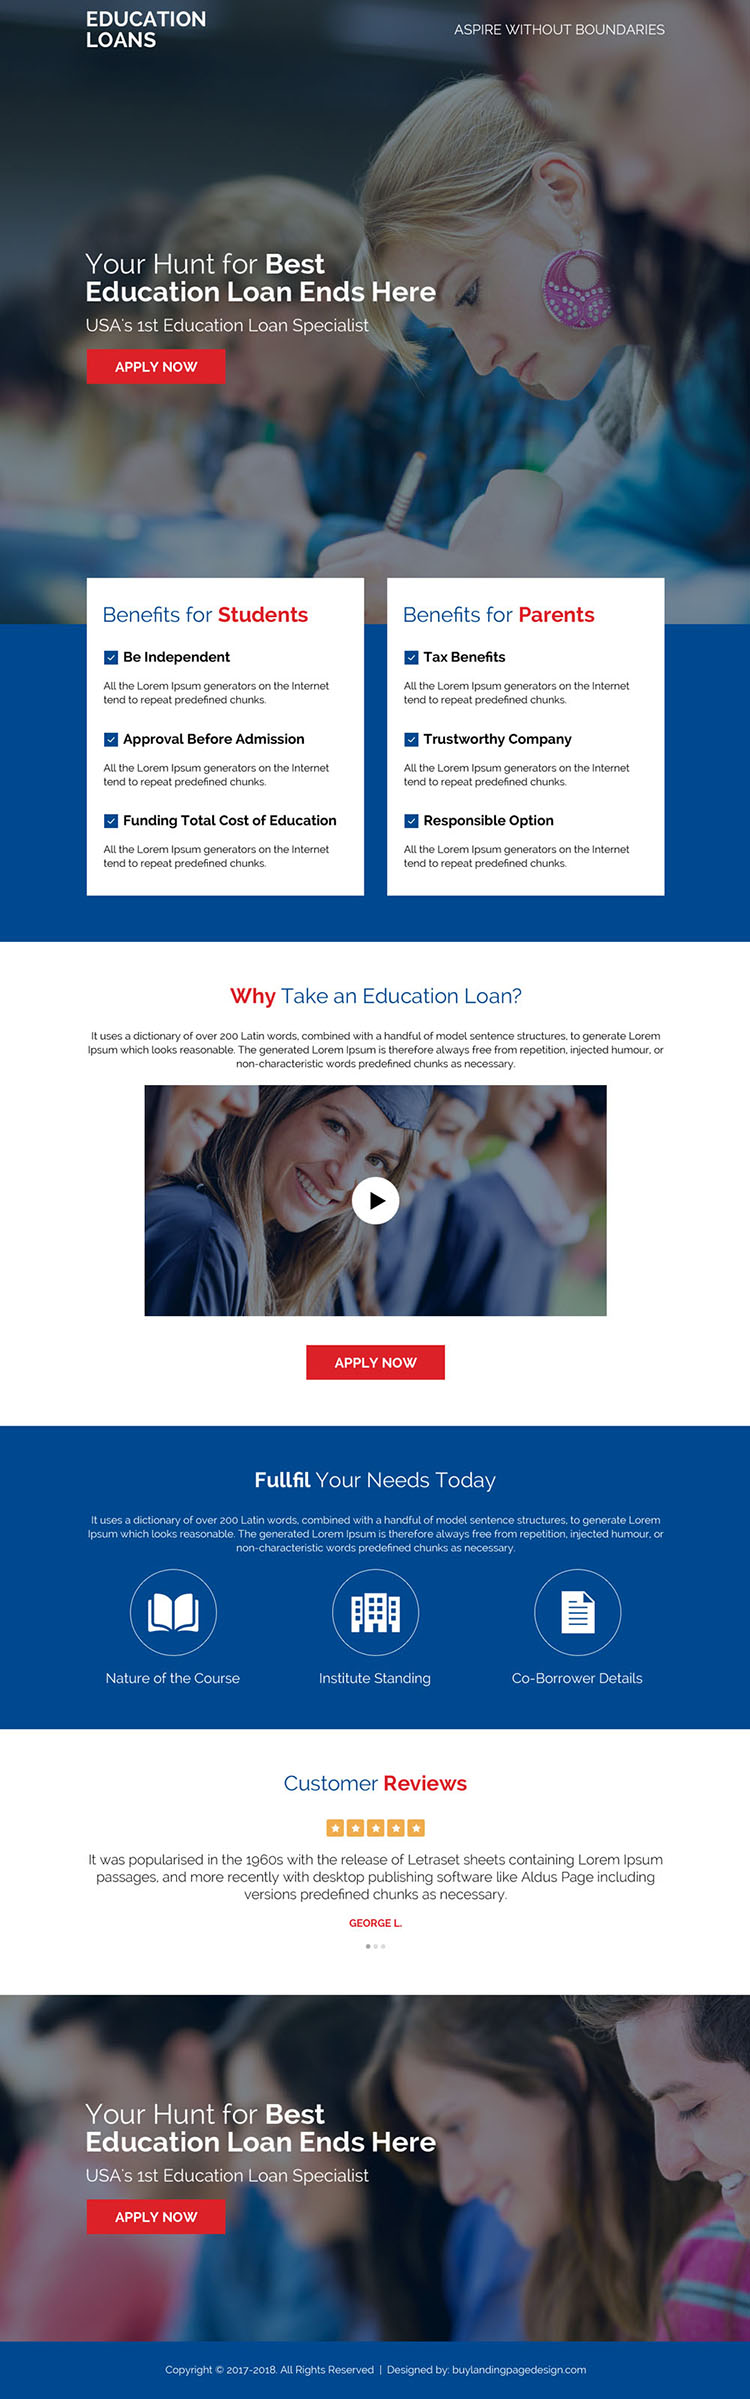 best education loan online application landing page design